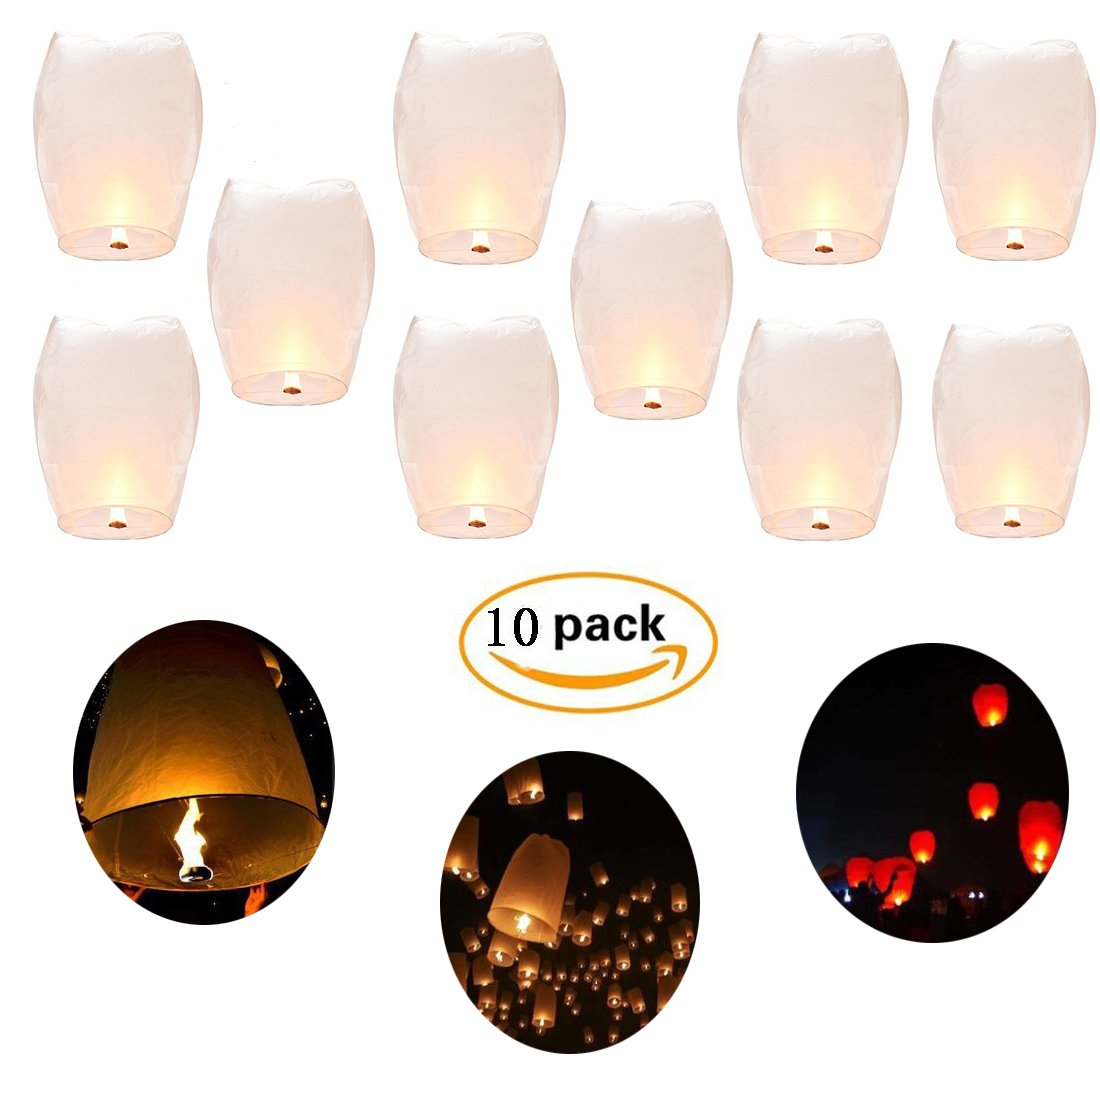 Sky Lanterns,Shellvcase 10Pcs Fly Sky Wish Paper,Fully Assembled, 100% Biodegradable,New Designed Environmentally Fly Paper,Great for Birthdays, Holidays, Weddings, Memorials, 4th of July by Shellvcase